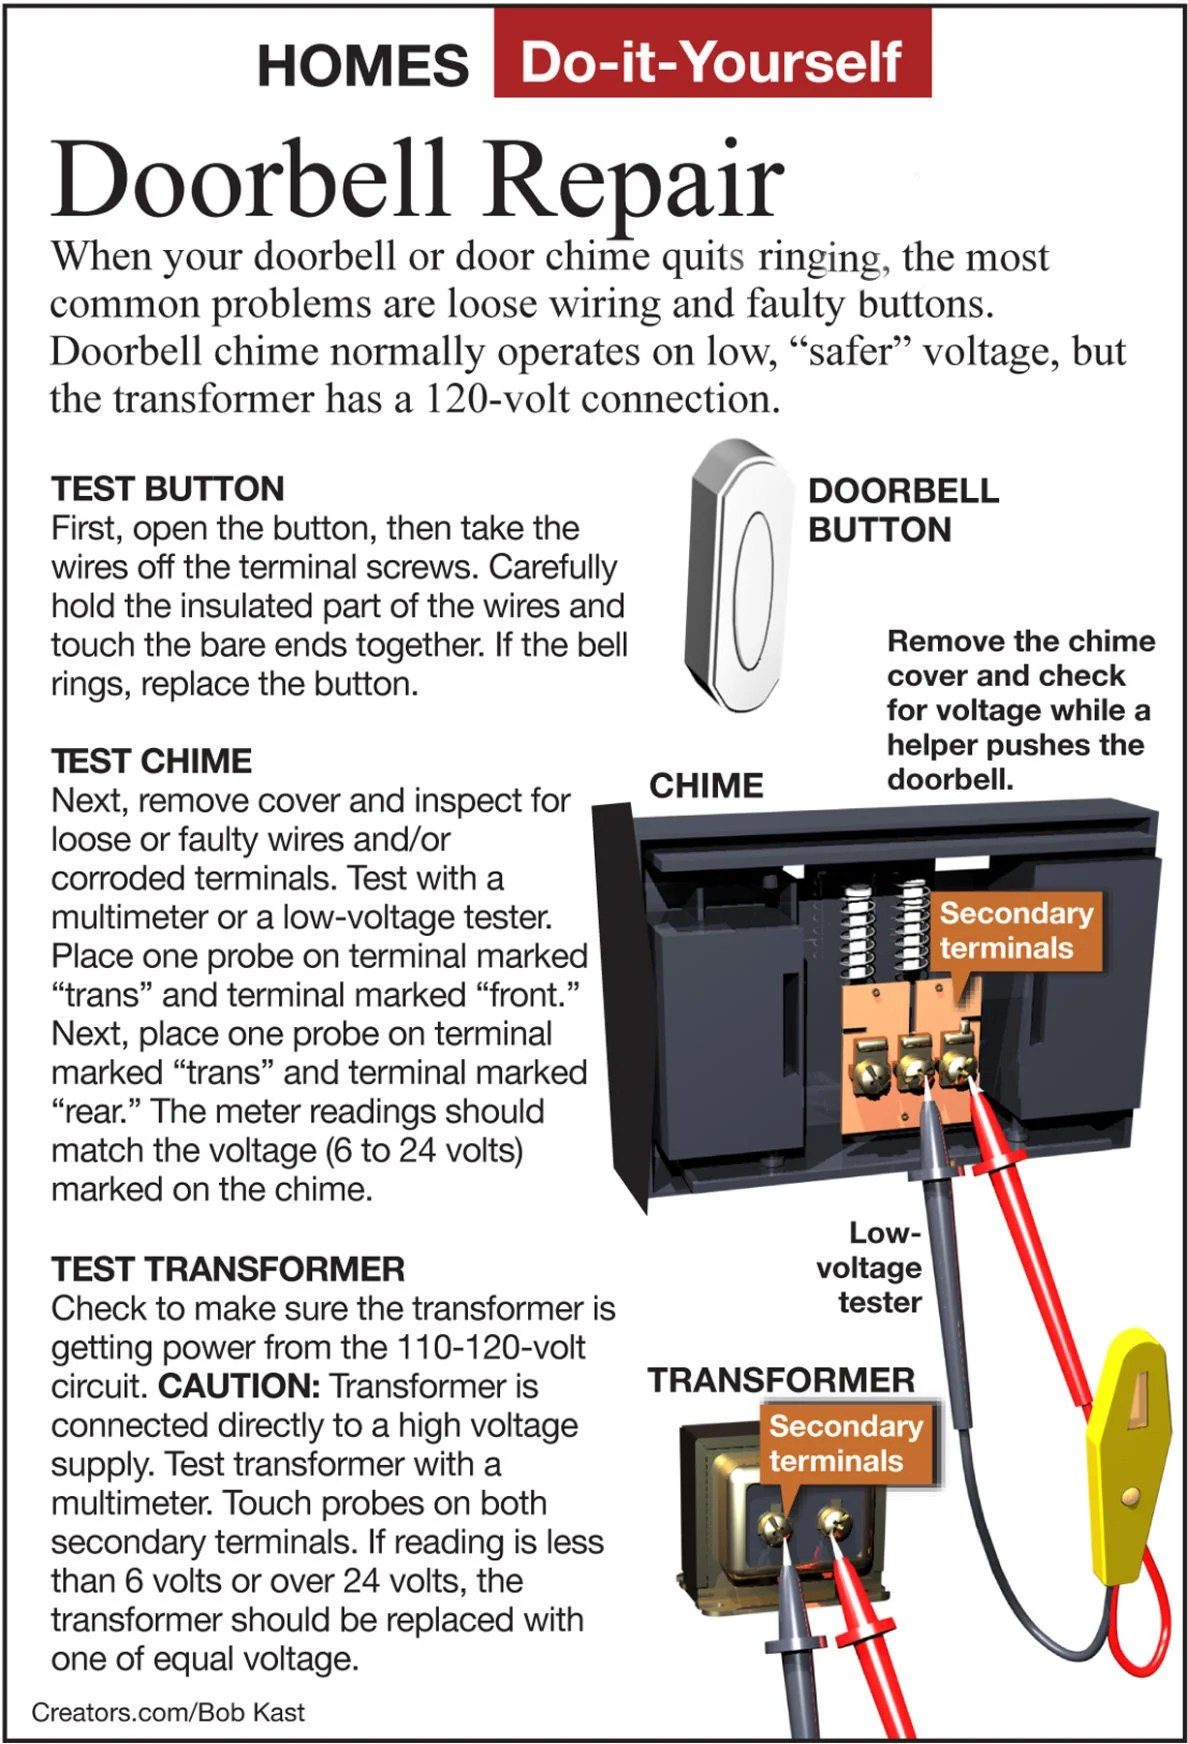 james dulley install a louder doorbell chime siouxland homes siouxcityjournal com sc 1 st sioux city journal [ 1188 x 1744 Pixel ]